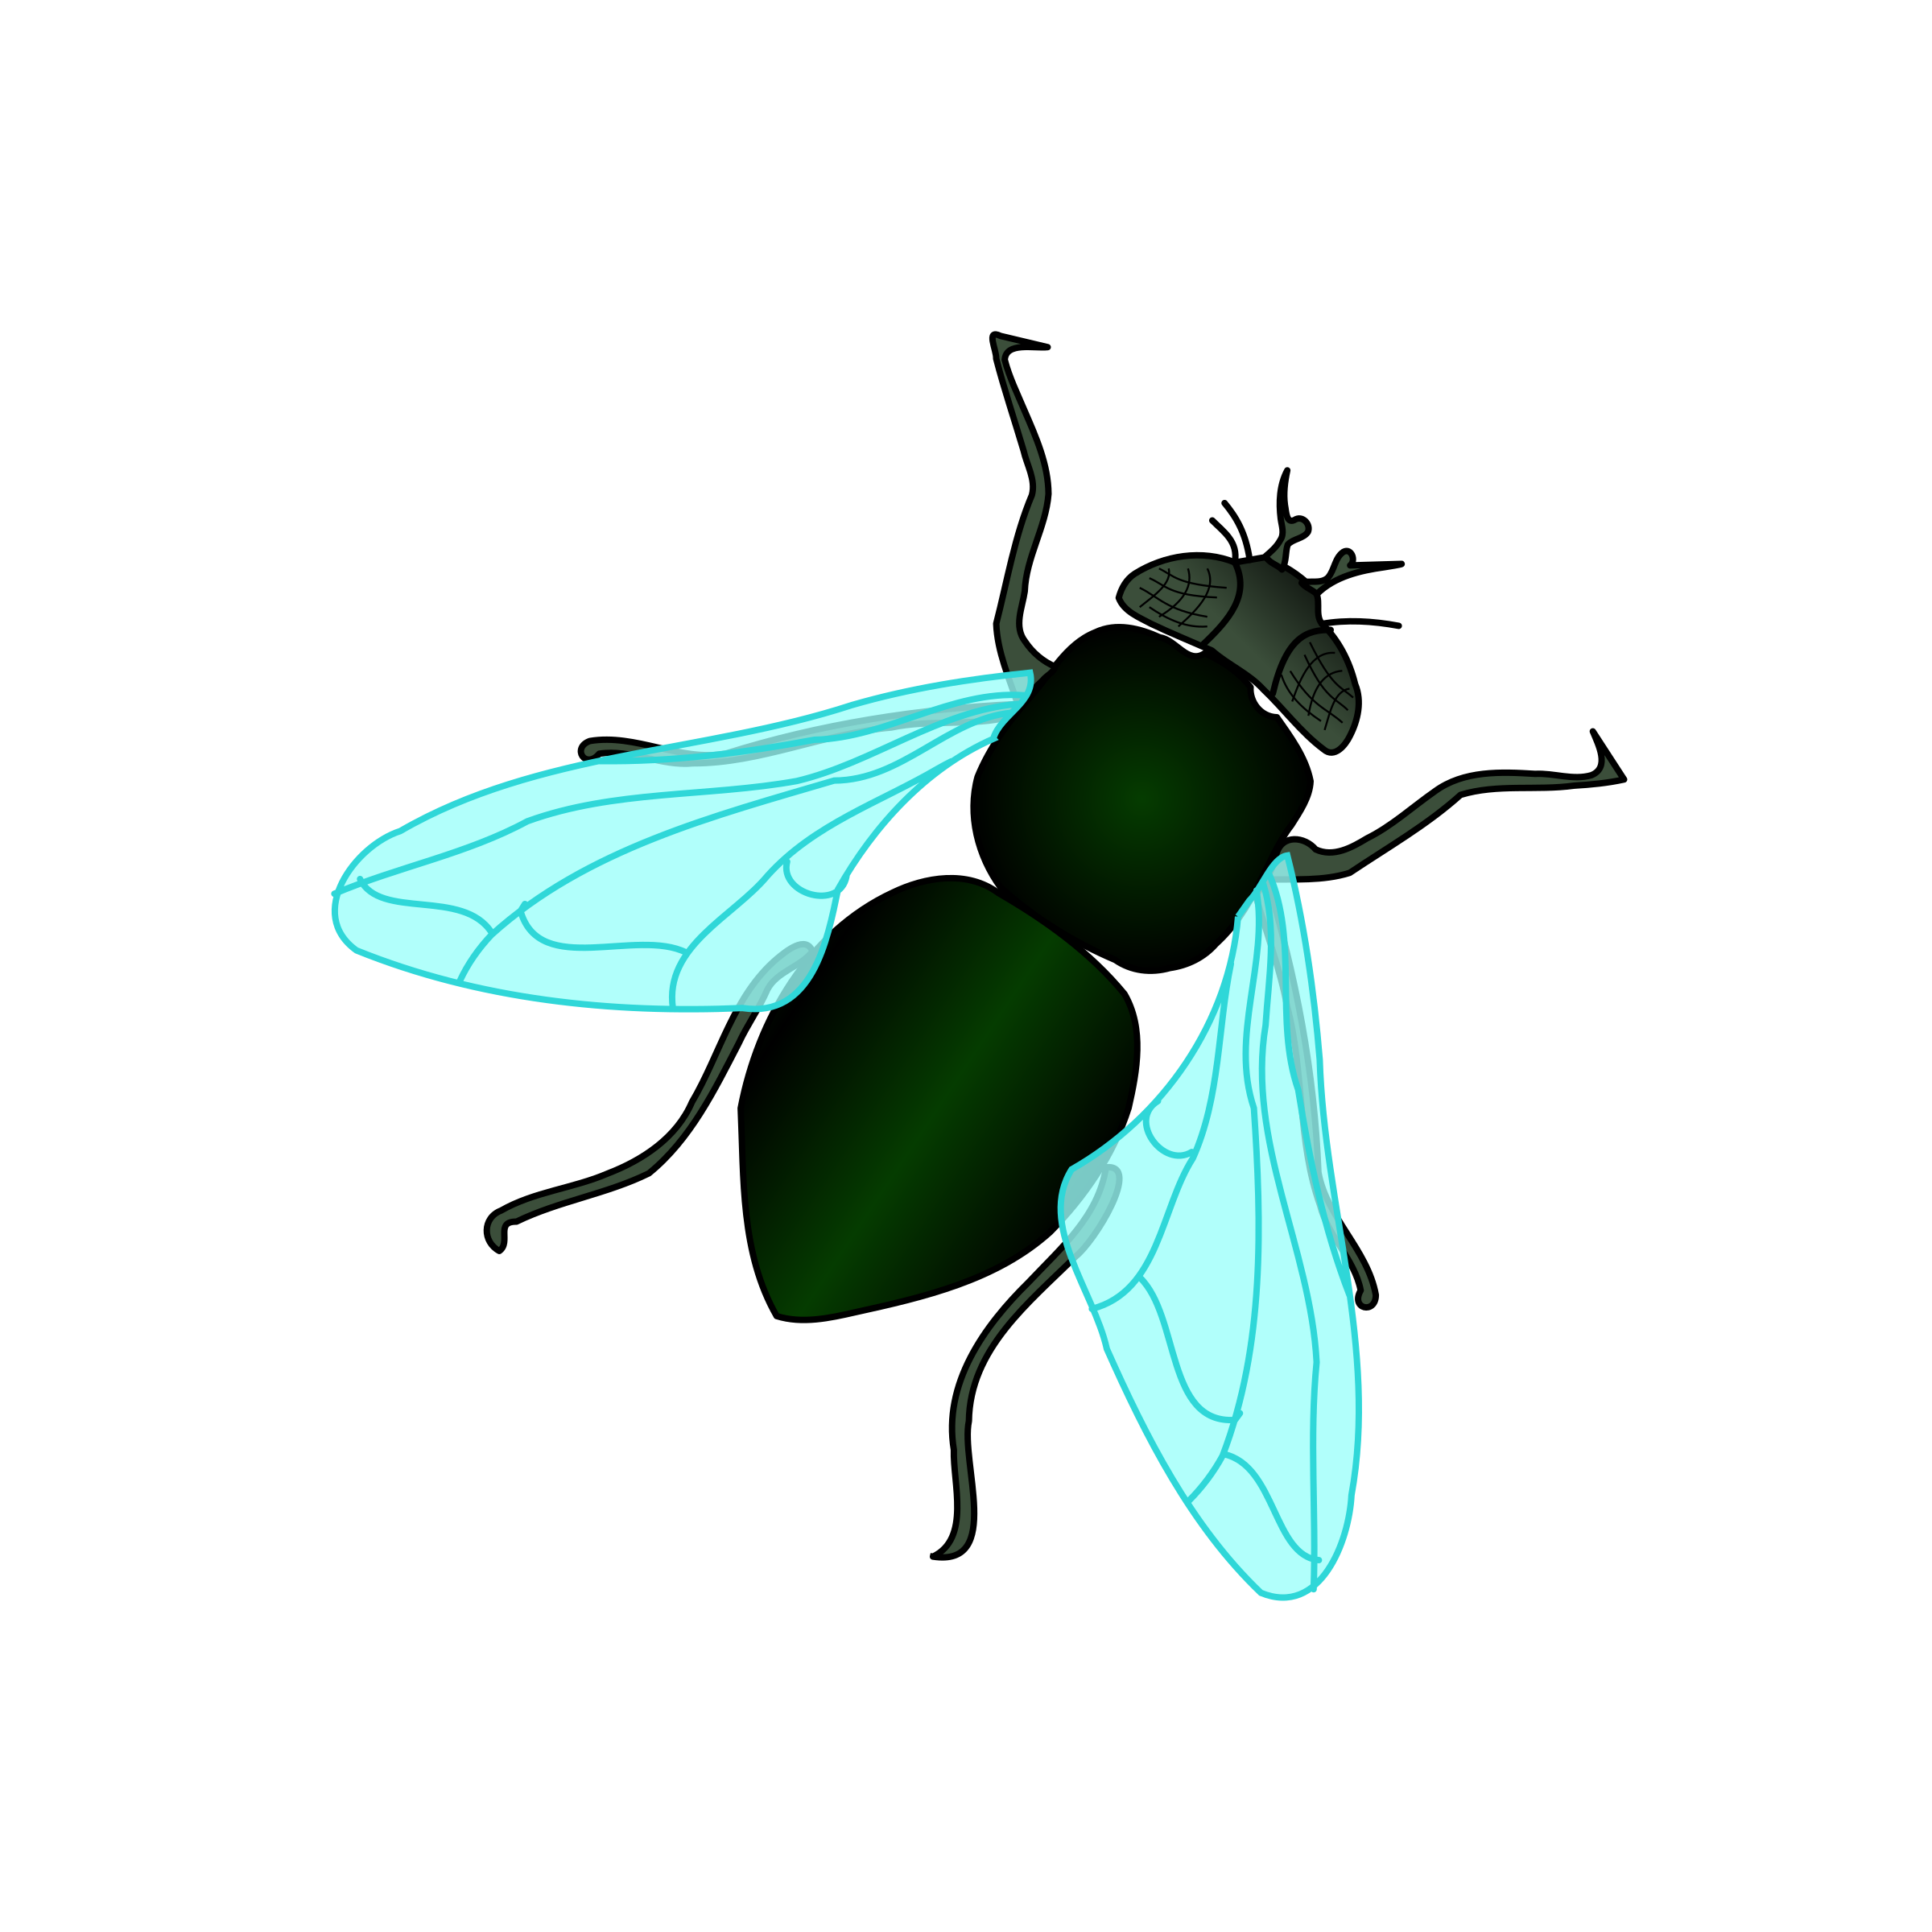 Fly Clipart | Clipart Panda - Free Clipart Images